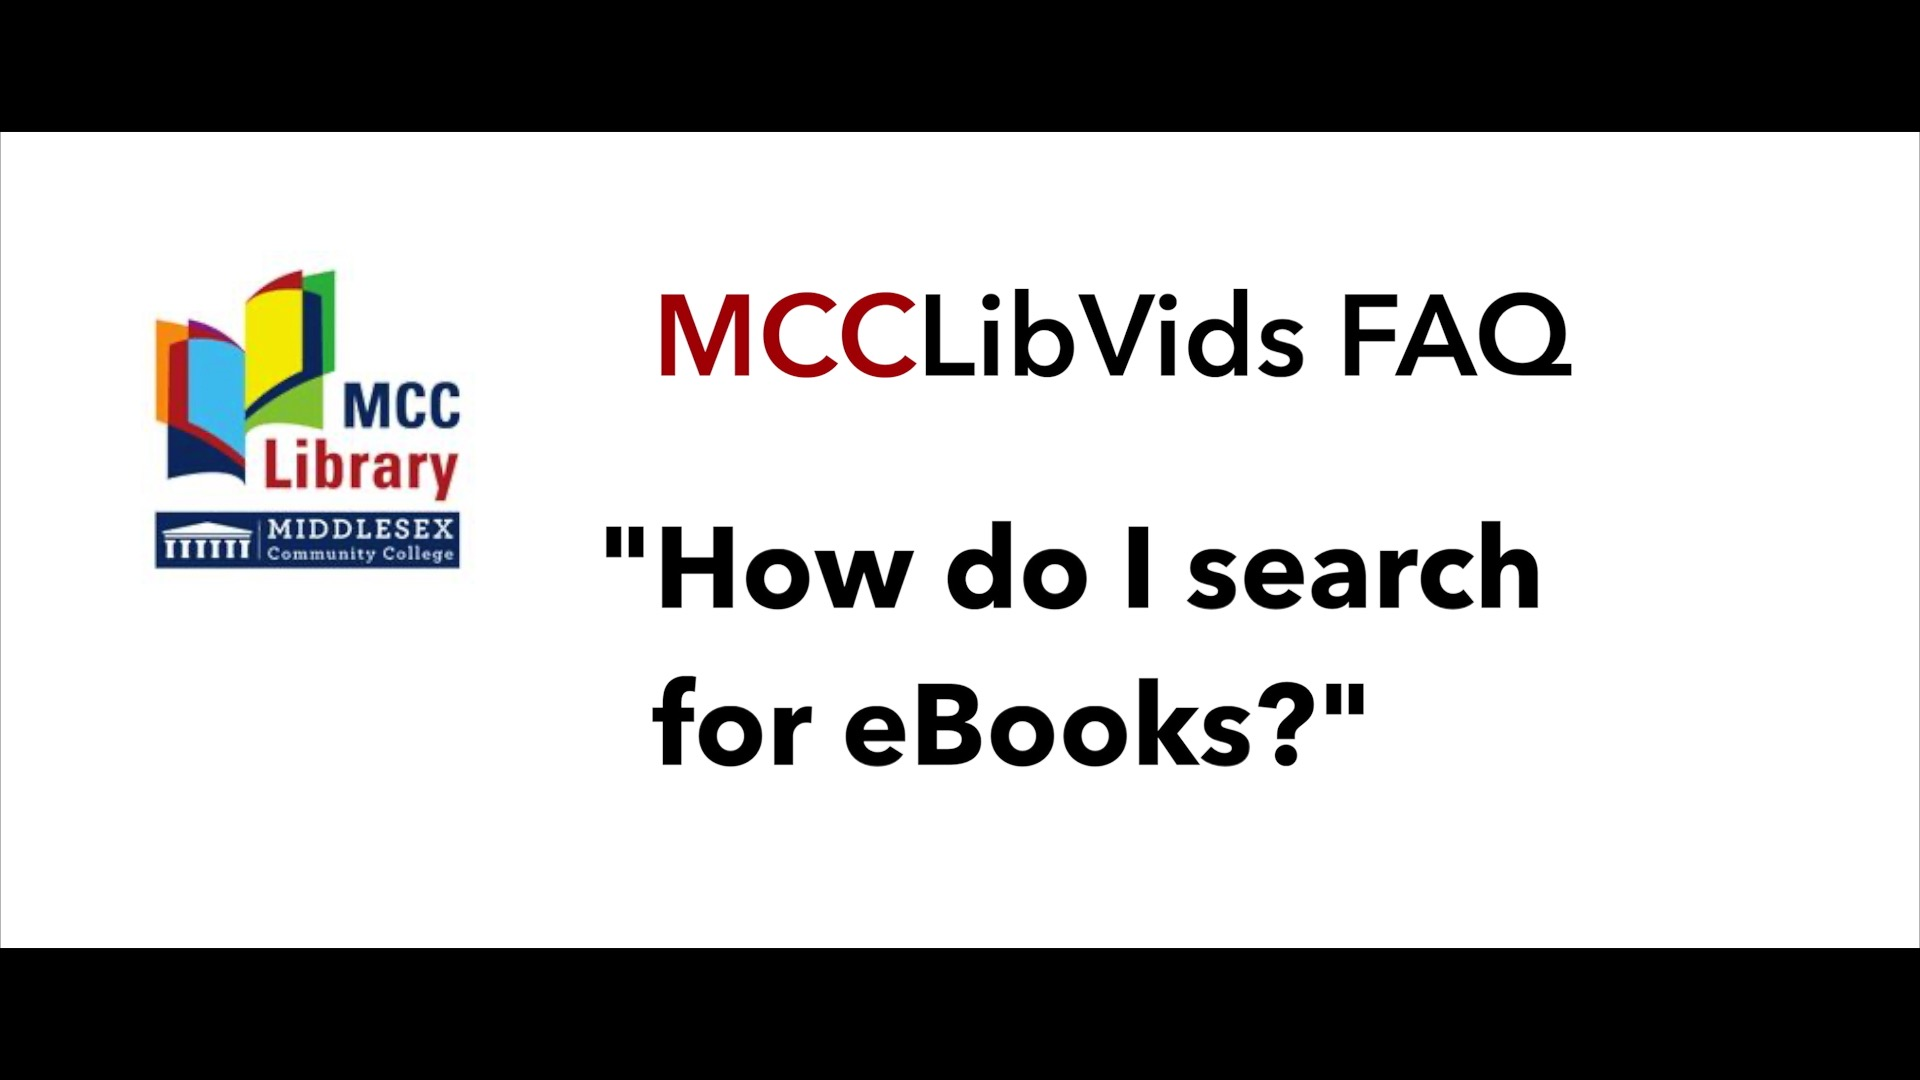 Button to link to video: How do I Search for eBooks? MCCLibVids FAQ